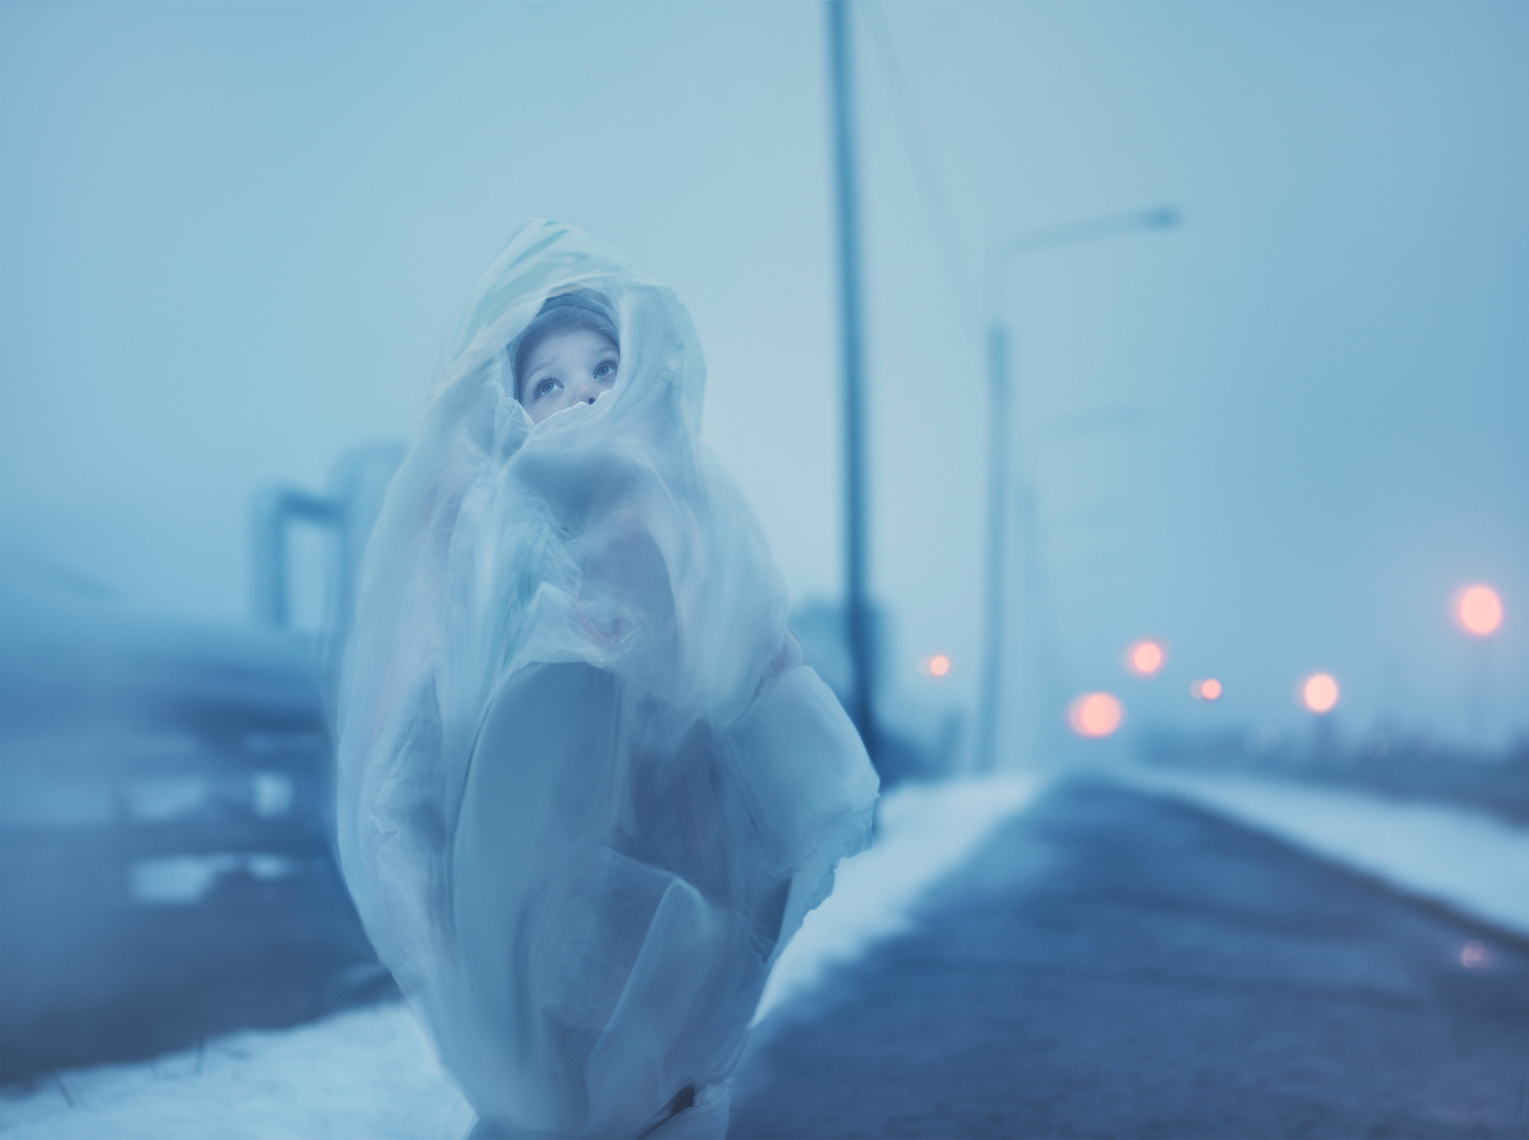 Ghosts Watching Over Me // Aki-Pekka Sinikoski, Photographer from Helsinki, Finland